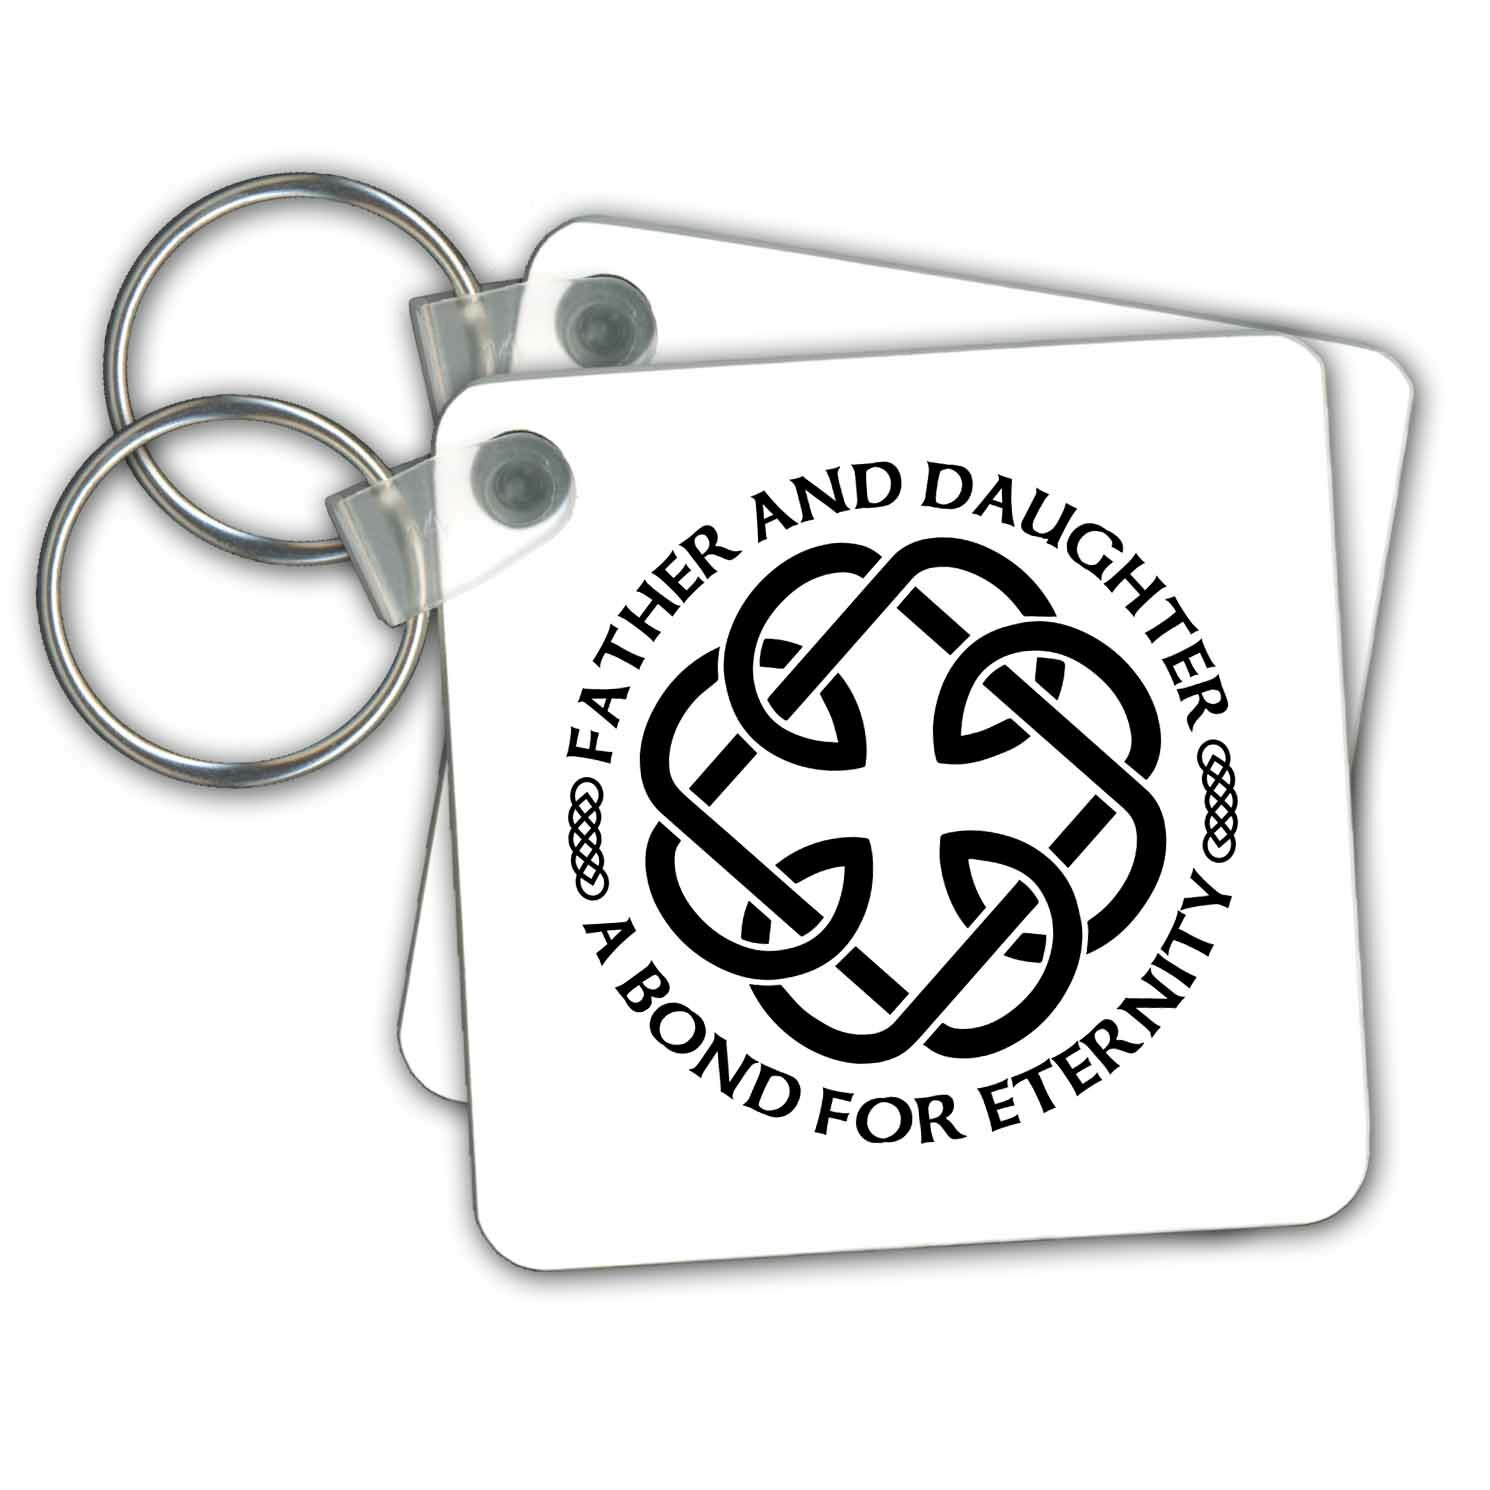 3drose Celtic Fatherhood Knot Father And Daughter A Bond For Eternity Key Chain Wayfair